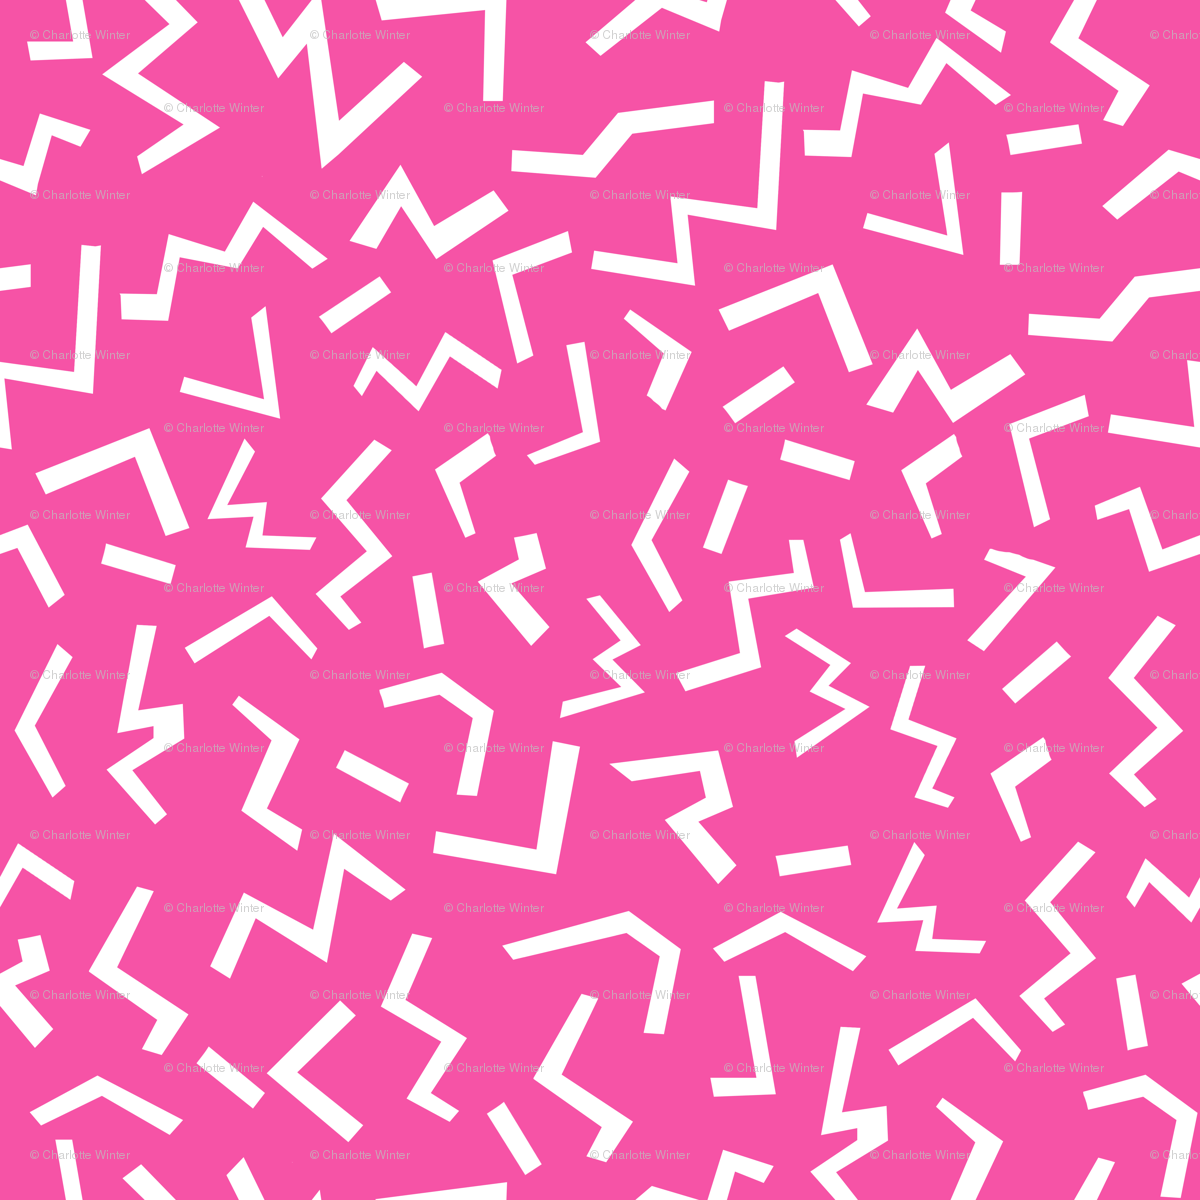 1200x1200 edgy shapes memphis 90s 80s pink girly hot pink wallpaper ...